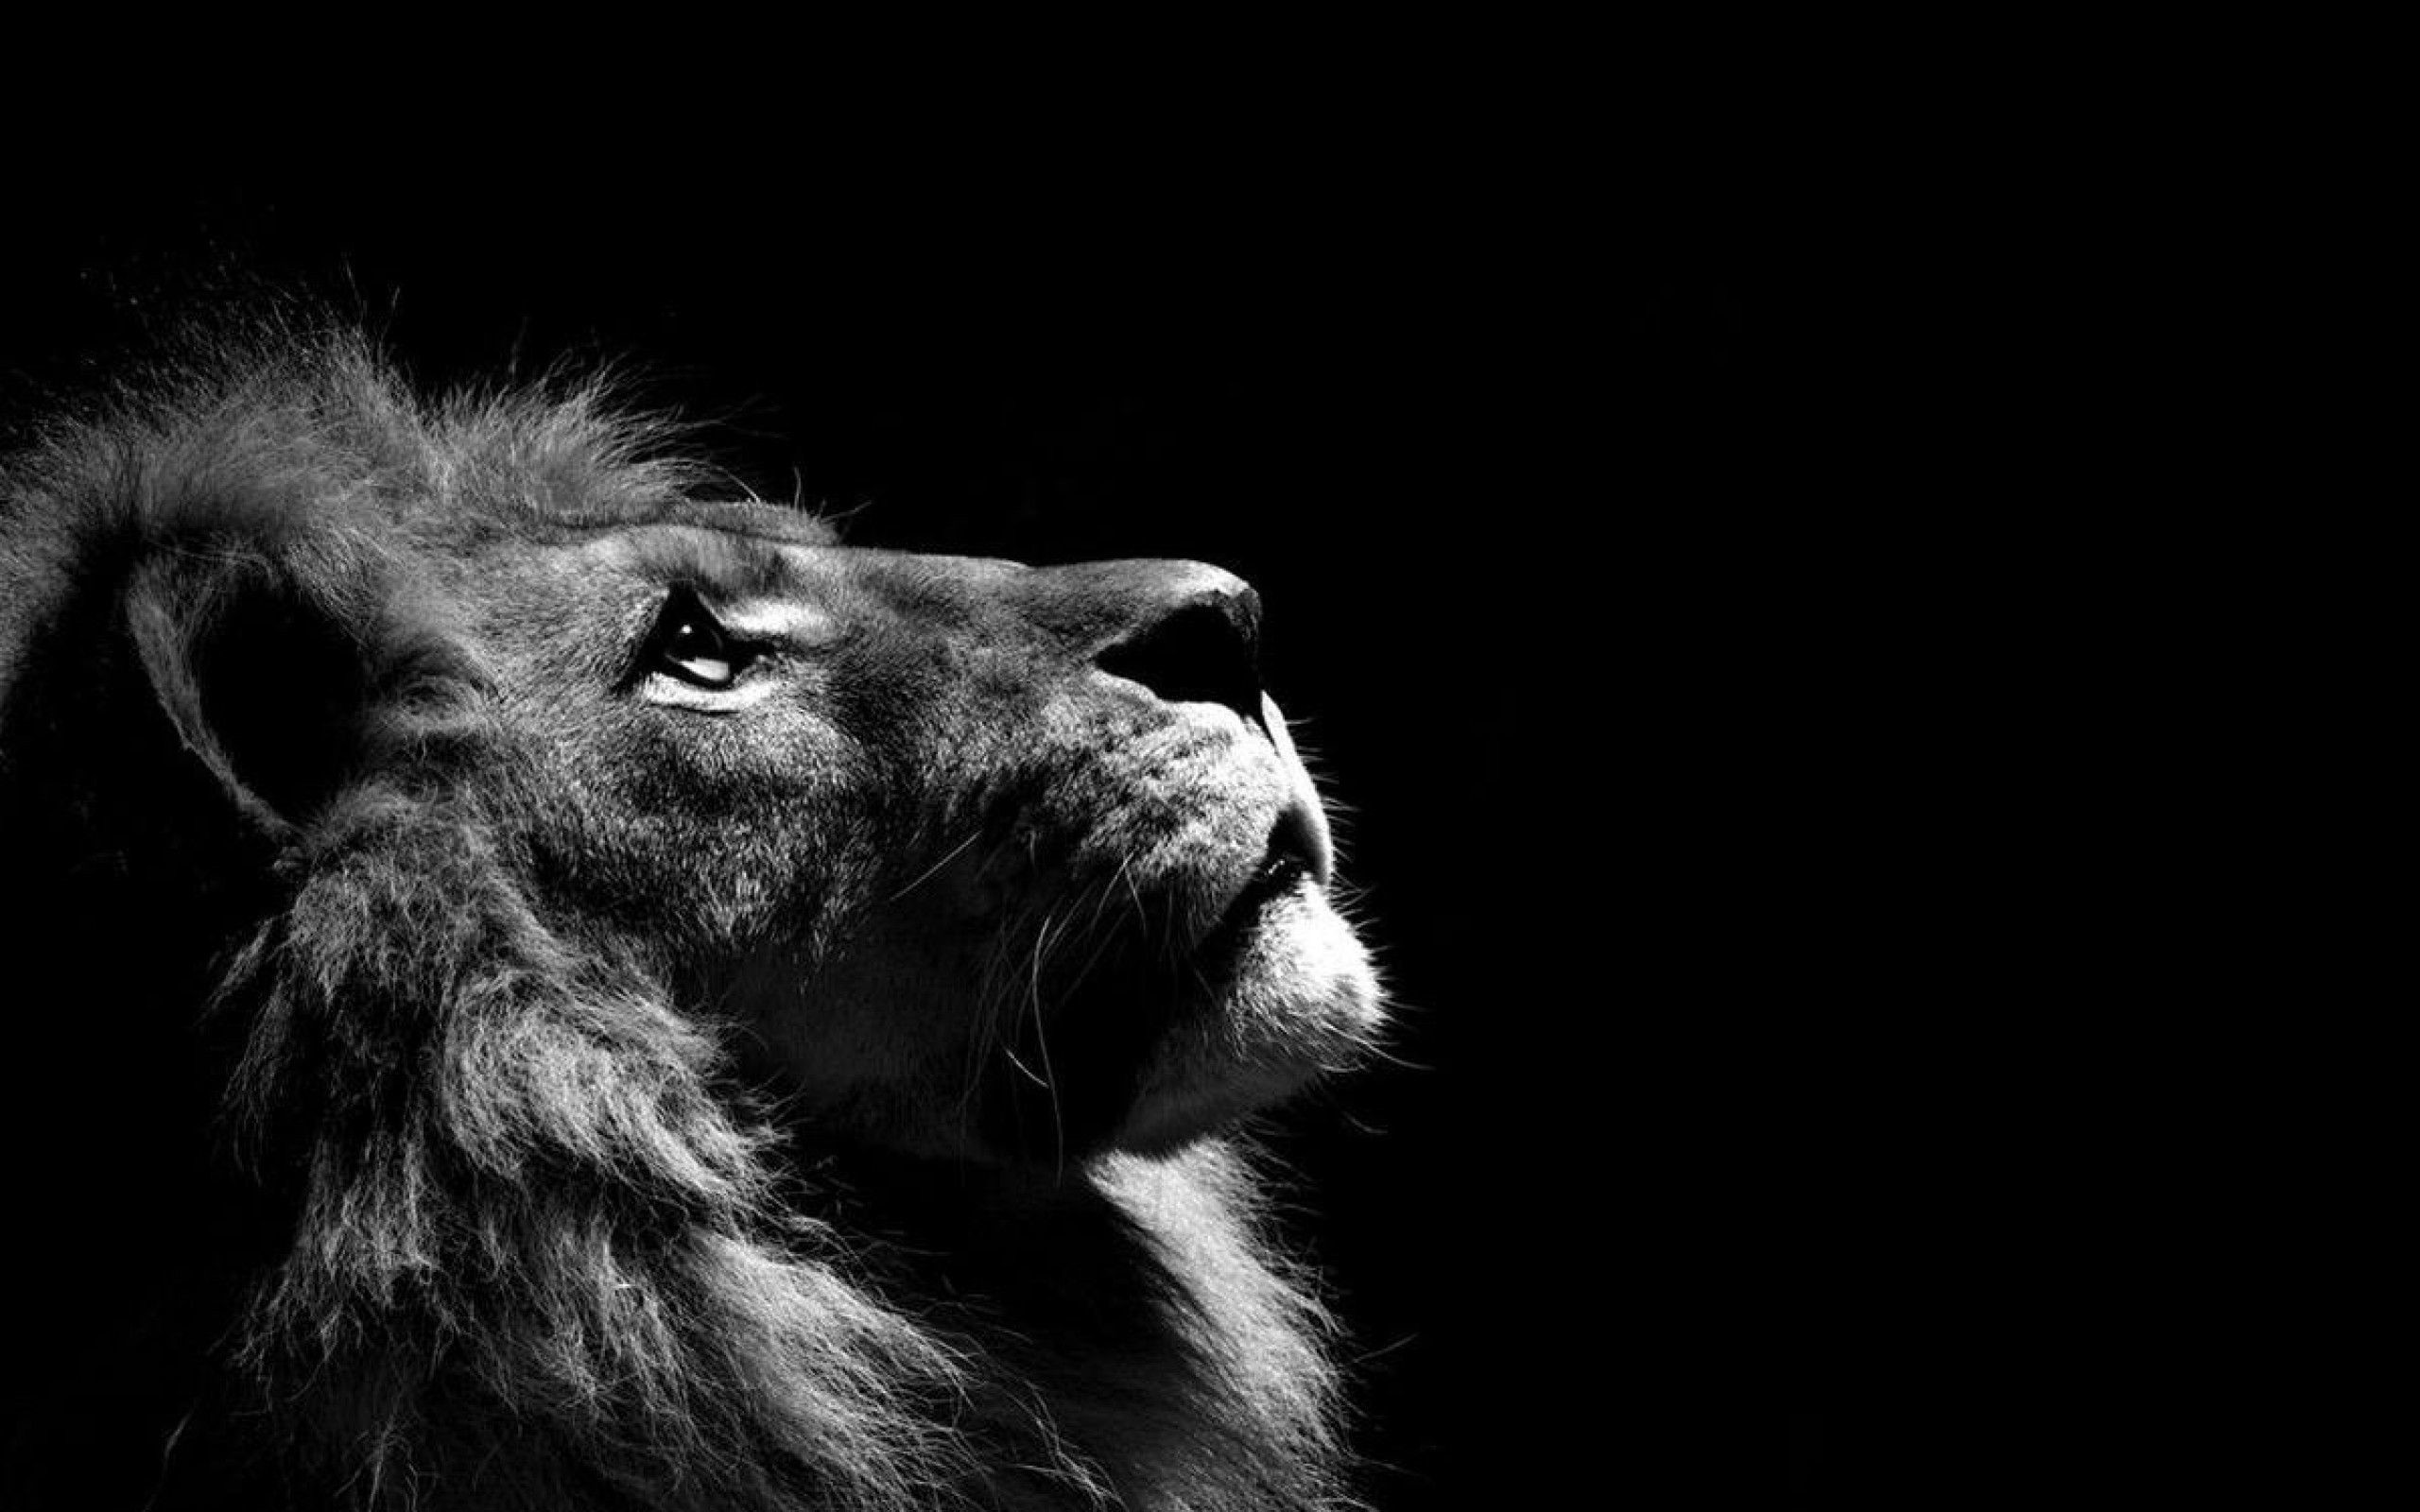 Truly Magnificent White Lion Wallpapers to Spice Up your White Lion Images Wallpapers  Wallpapers)